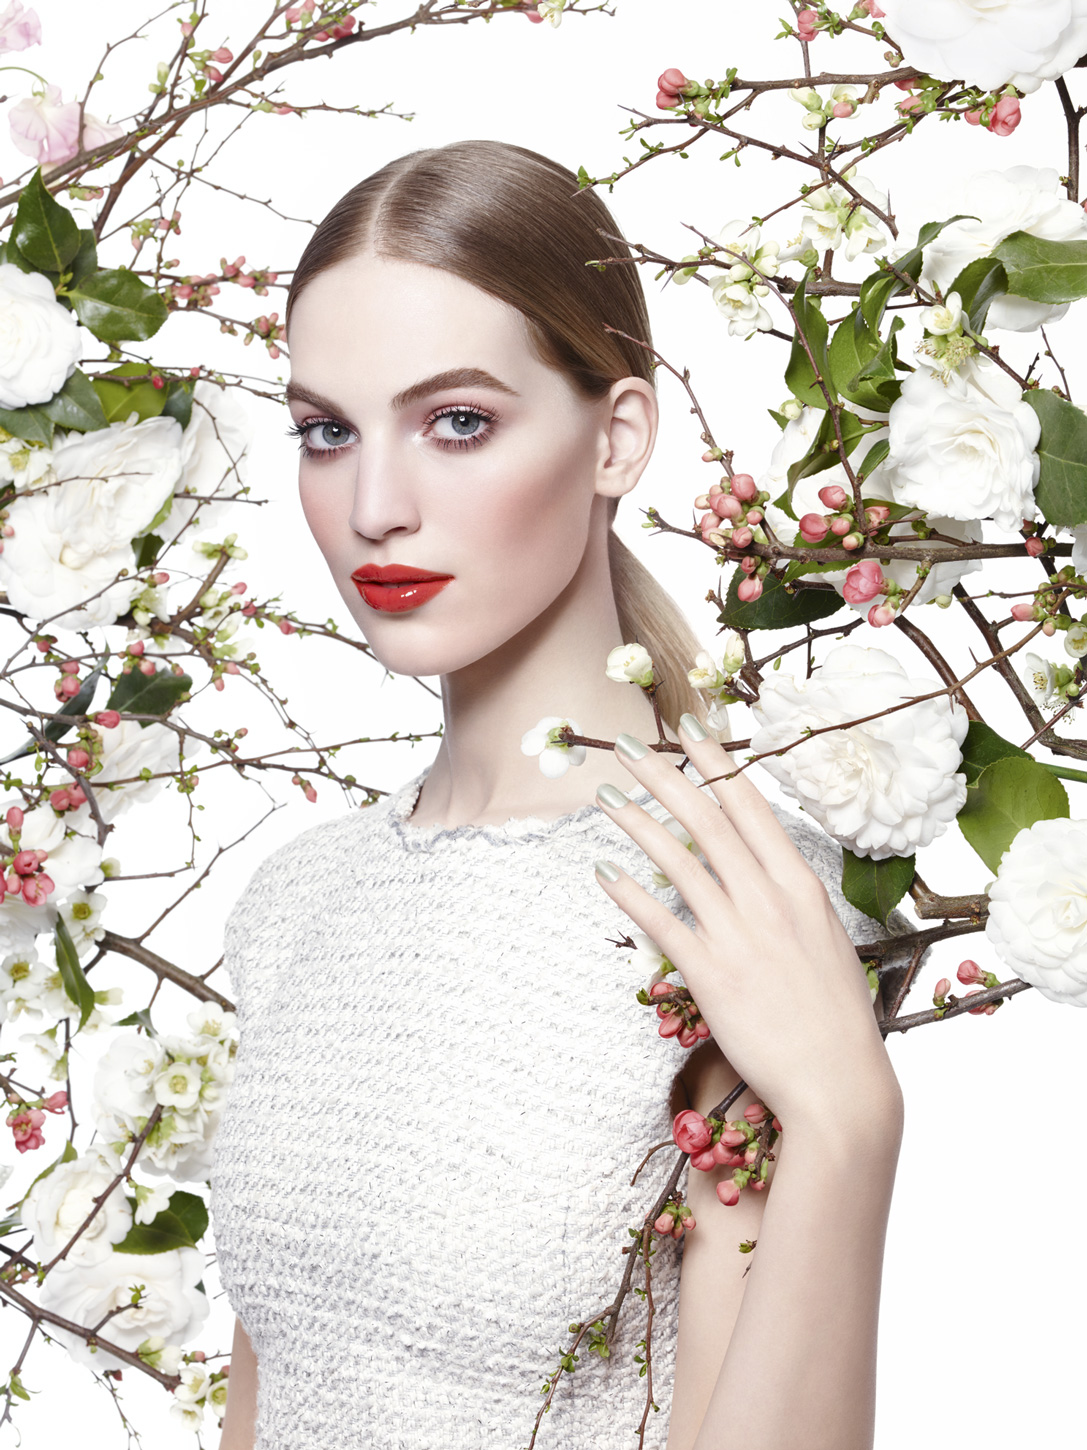 Nieuwe-lente-2015-make-up-collectie-van-Chanel-thenewgirlintown